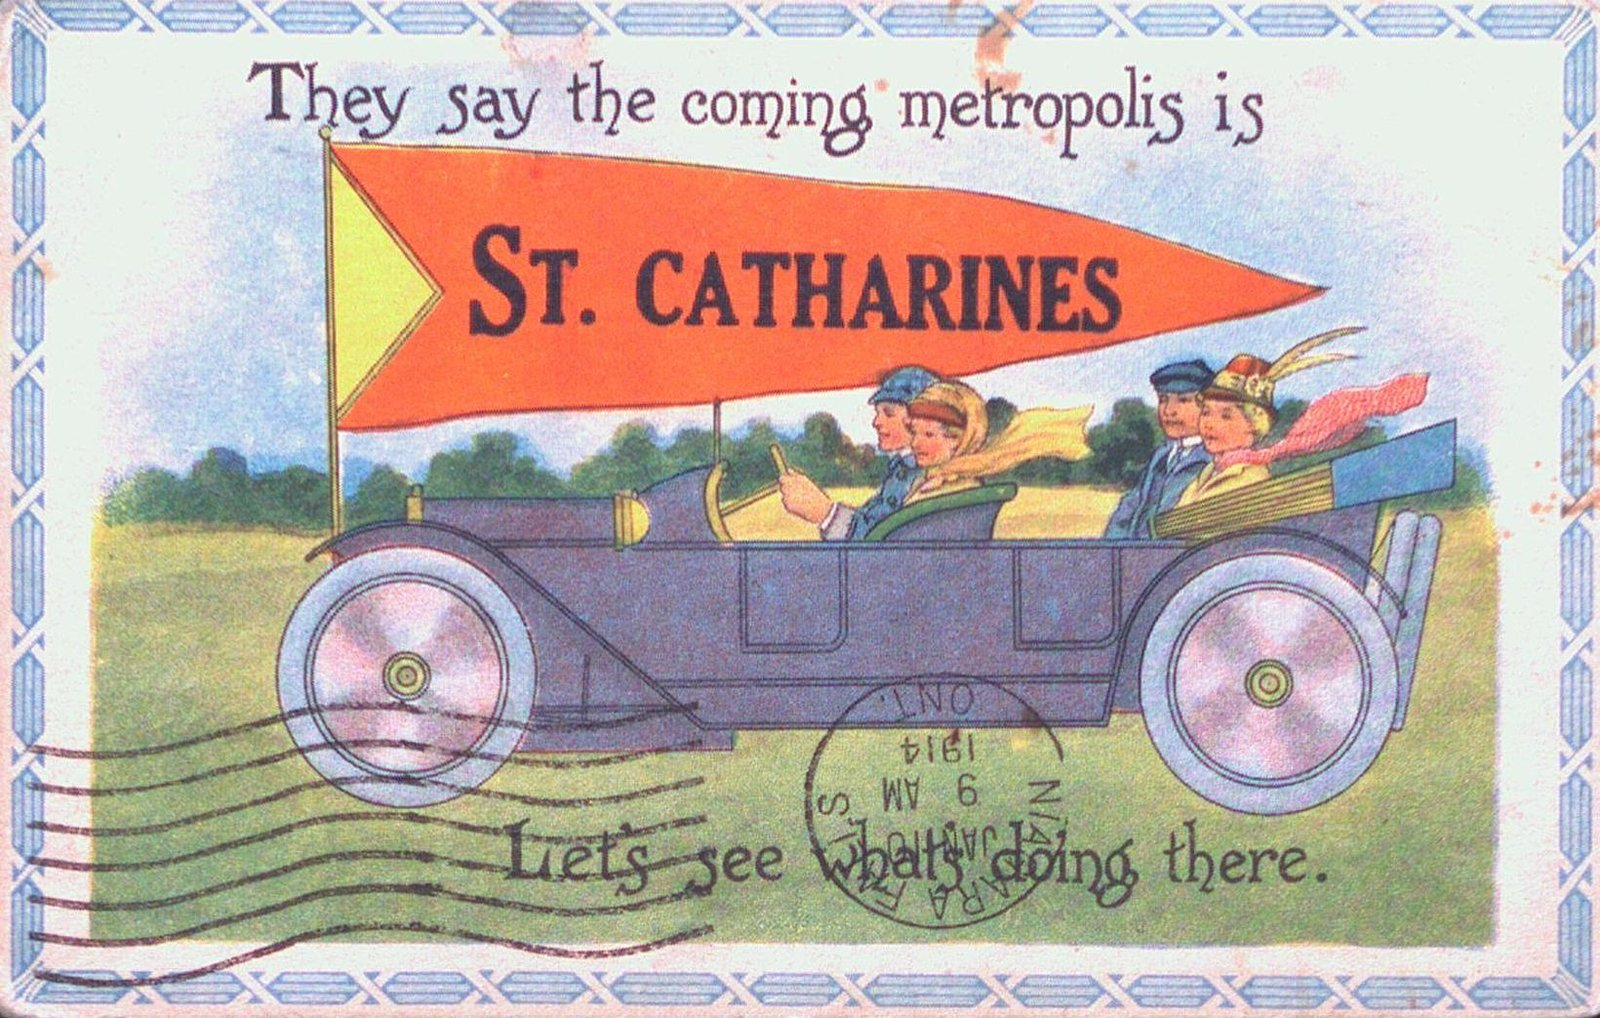 Advertisement for St. Catharines